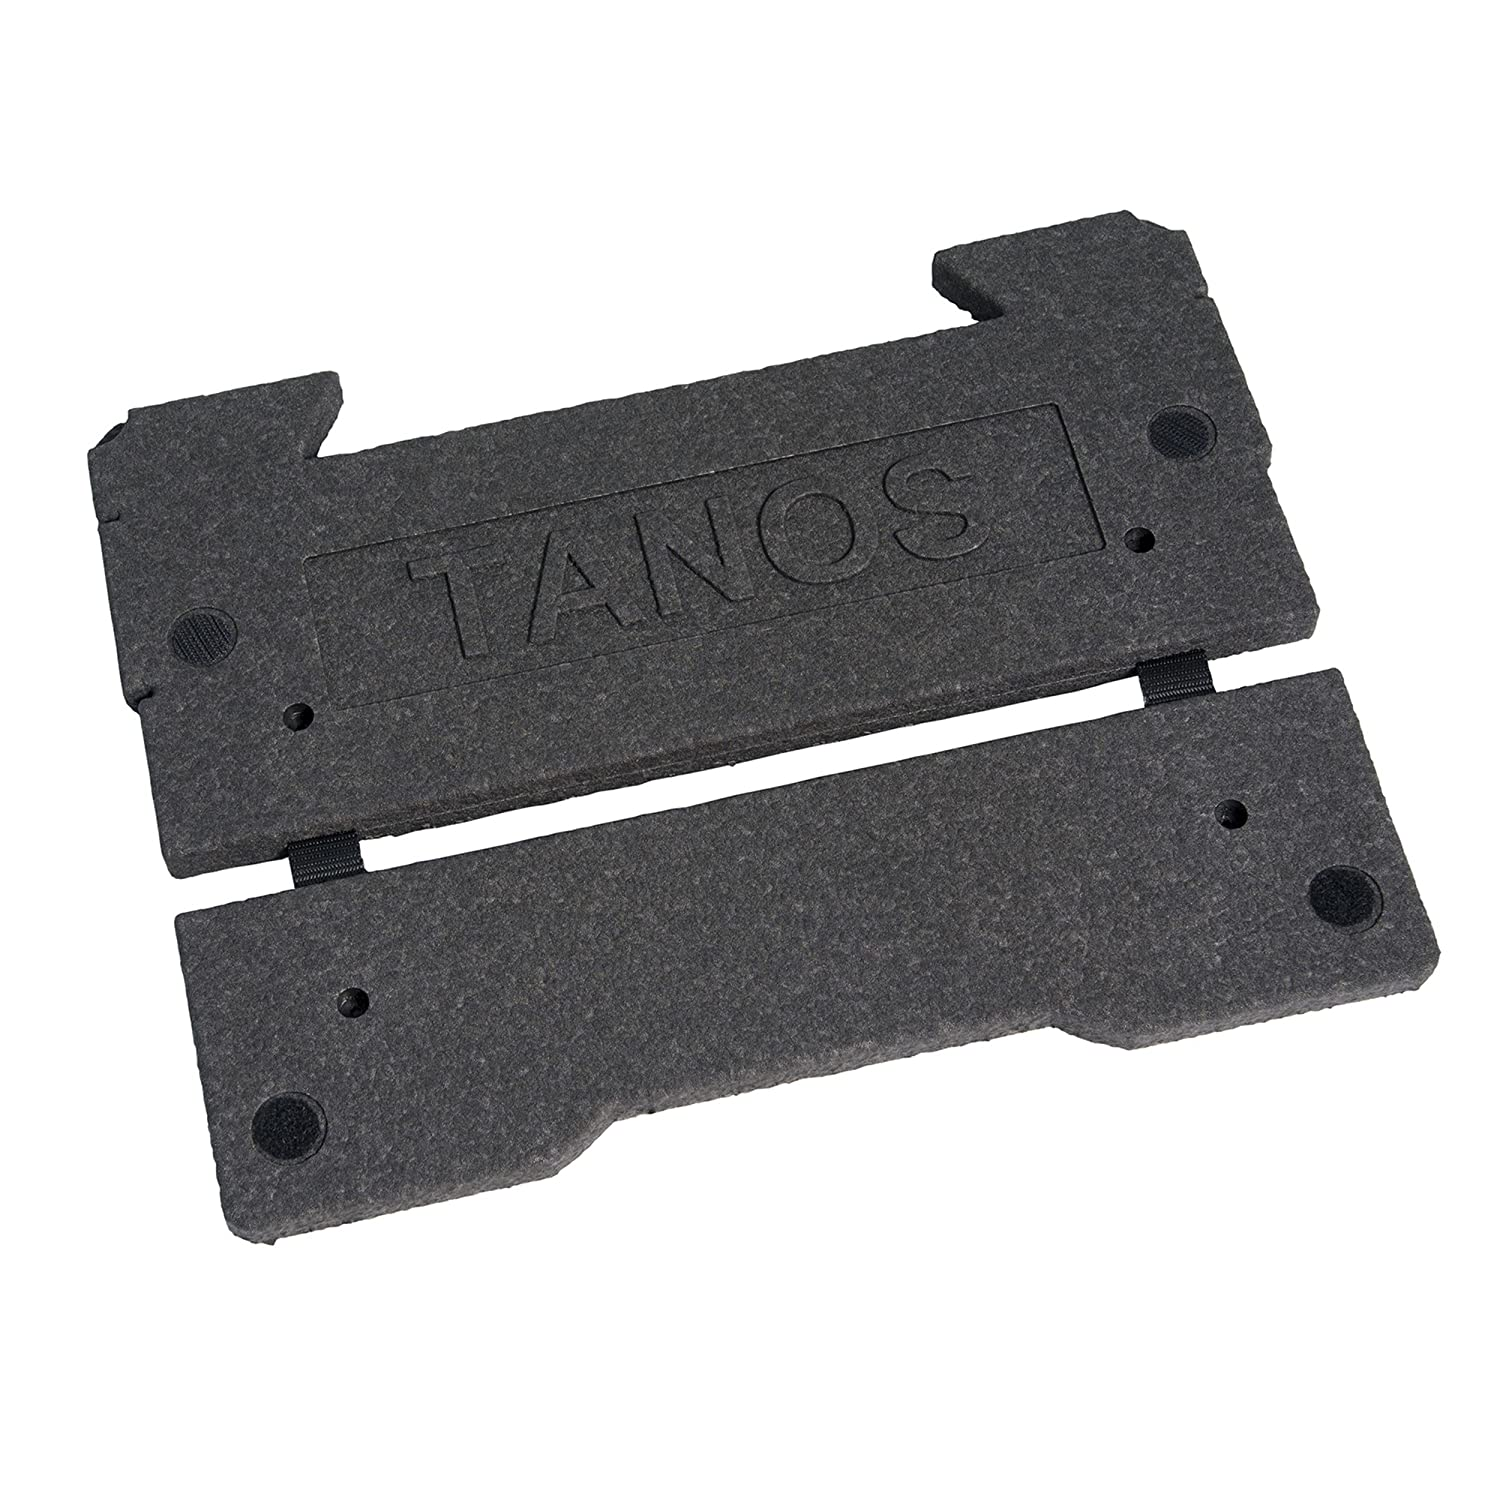 Tanos EPPクッションfor Systainers B07B9L731B 19119